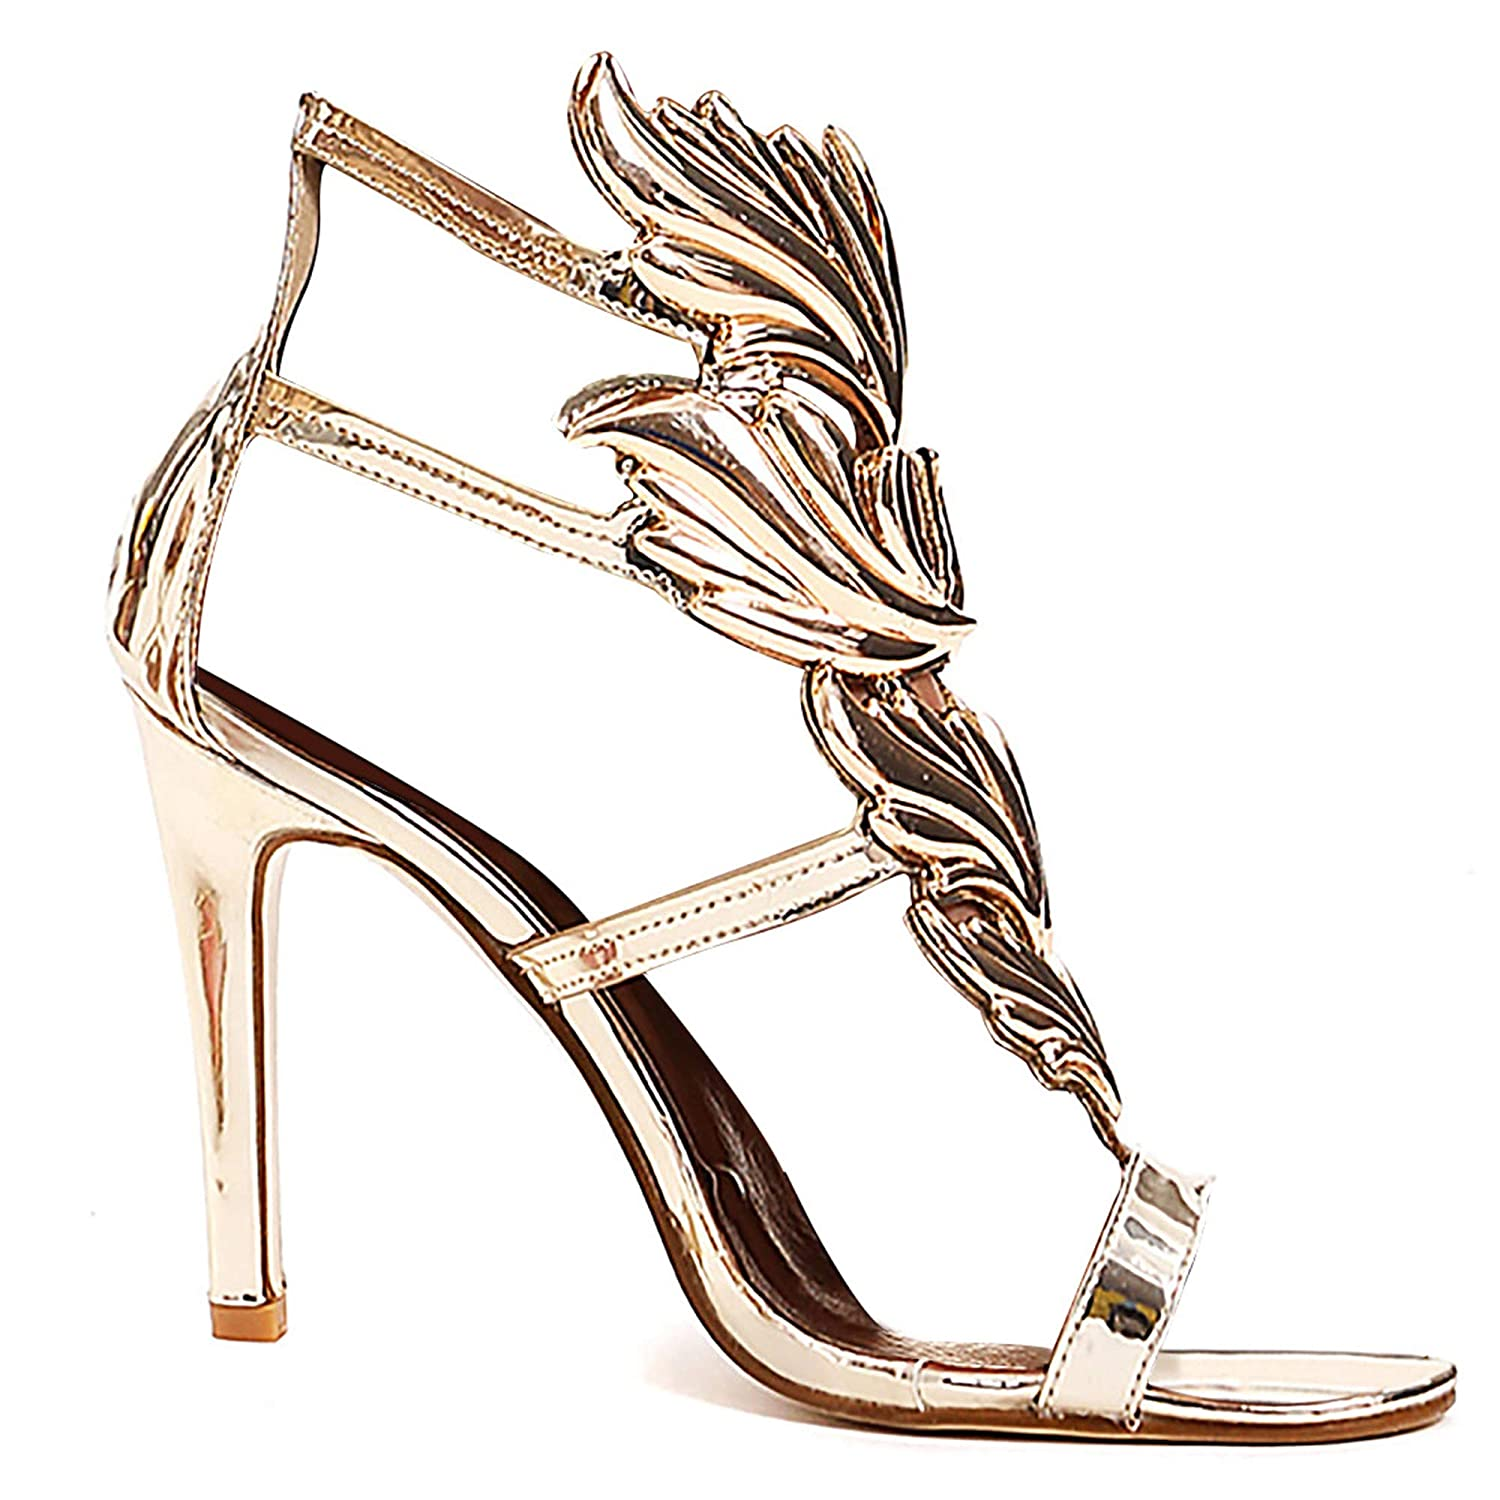 Women's Gold Flame Design High Heel Gladiator Sandal Shoes - DeluxeAdultCostumes.com